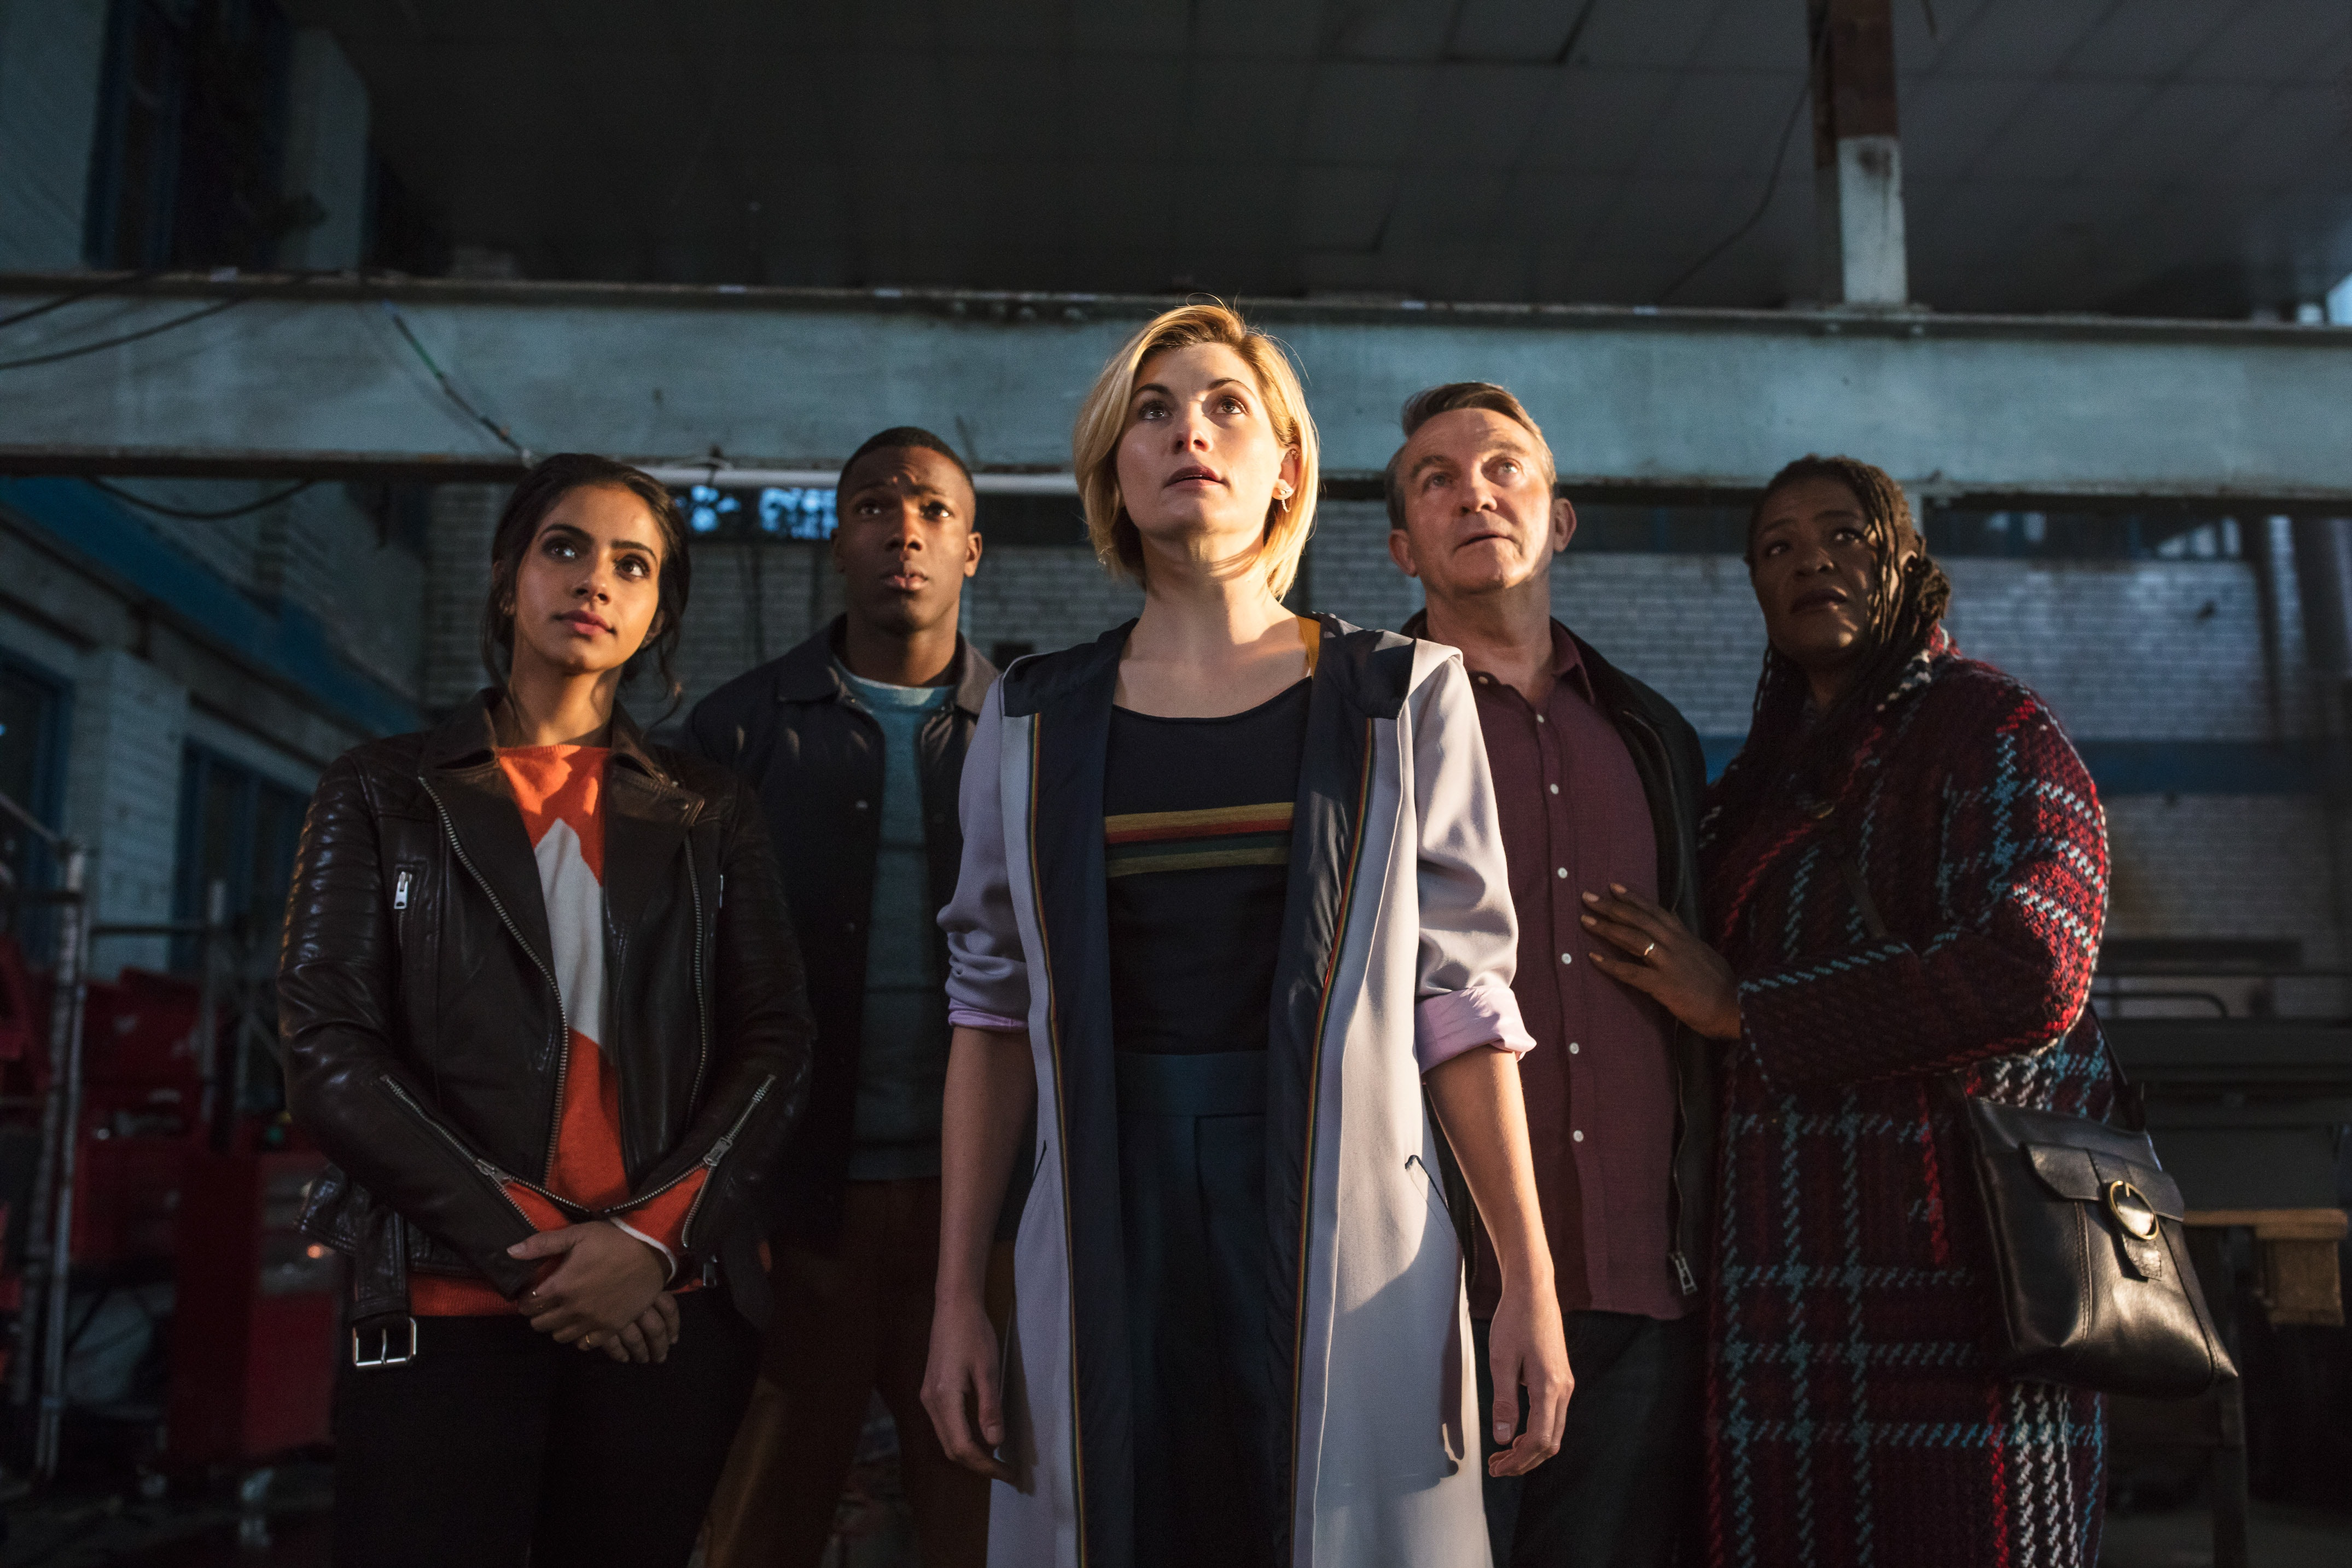 Doctor Who Christmas Specials.The Doctor Who Christmas Special May Not Happen This Year